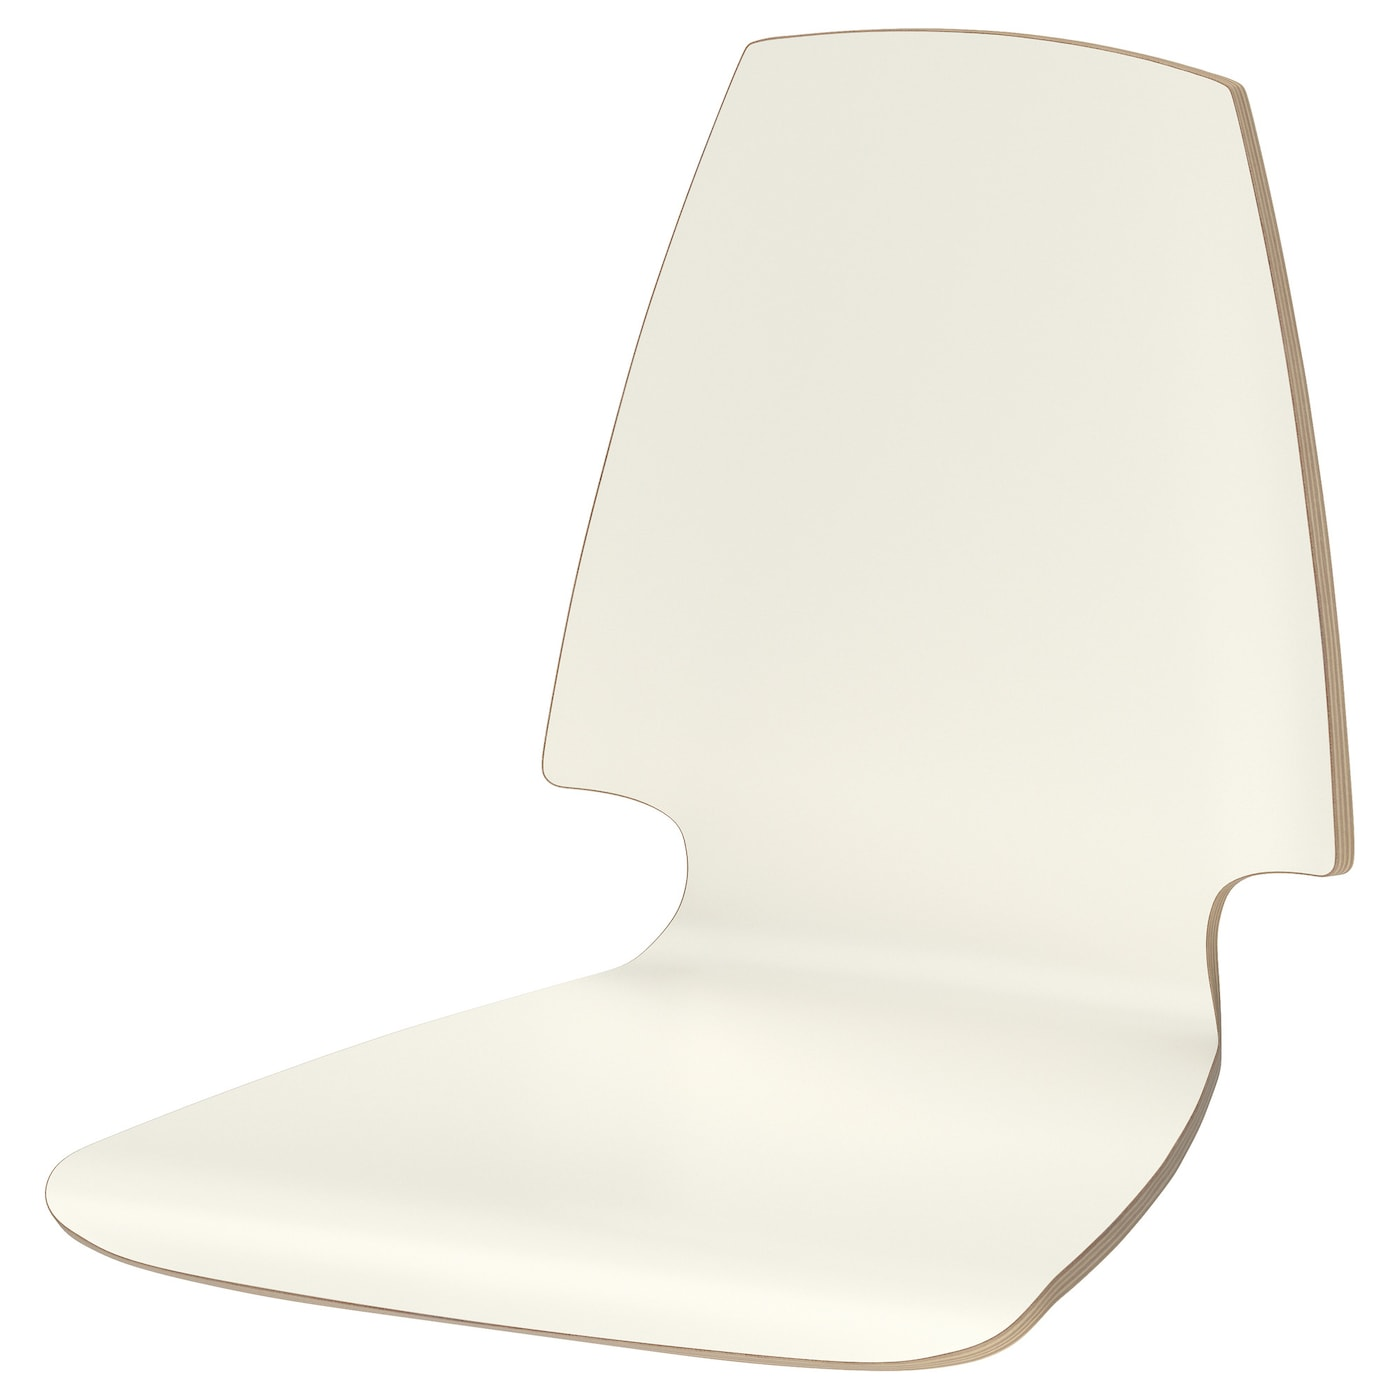 IKEA VILMAR seat shell The chair's melamine surface makes it durable and easy to keep clean.